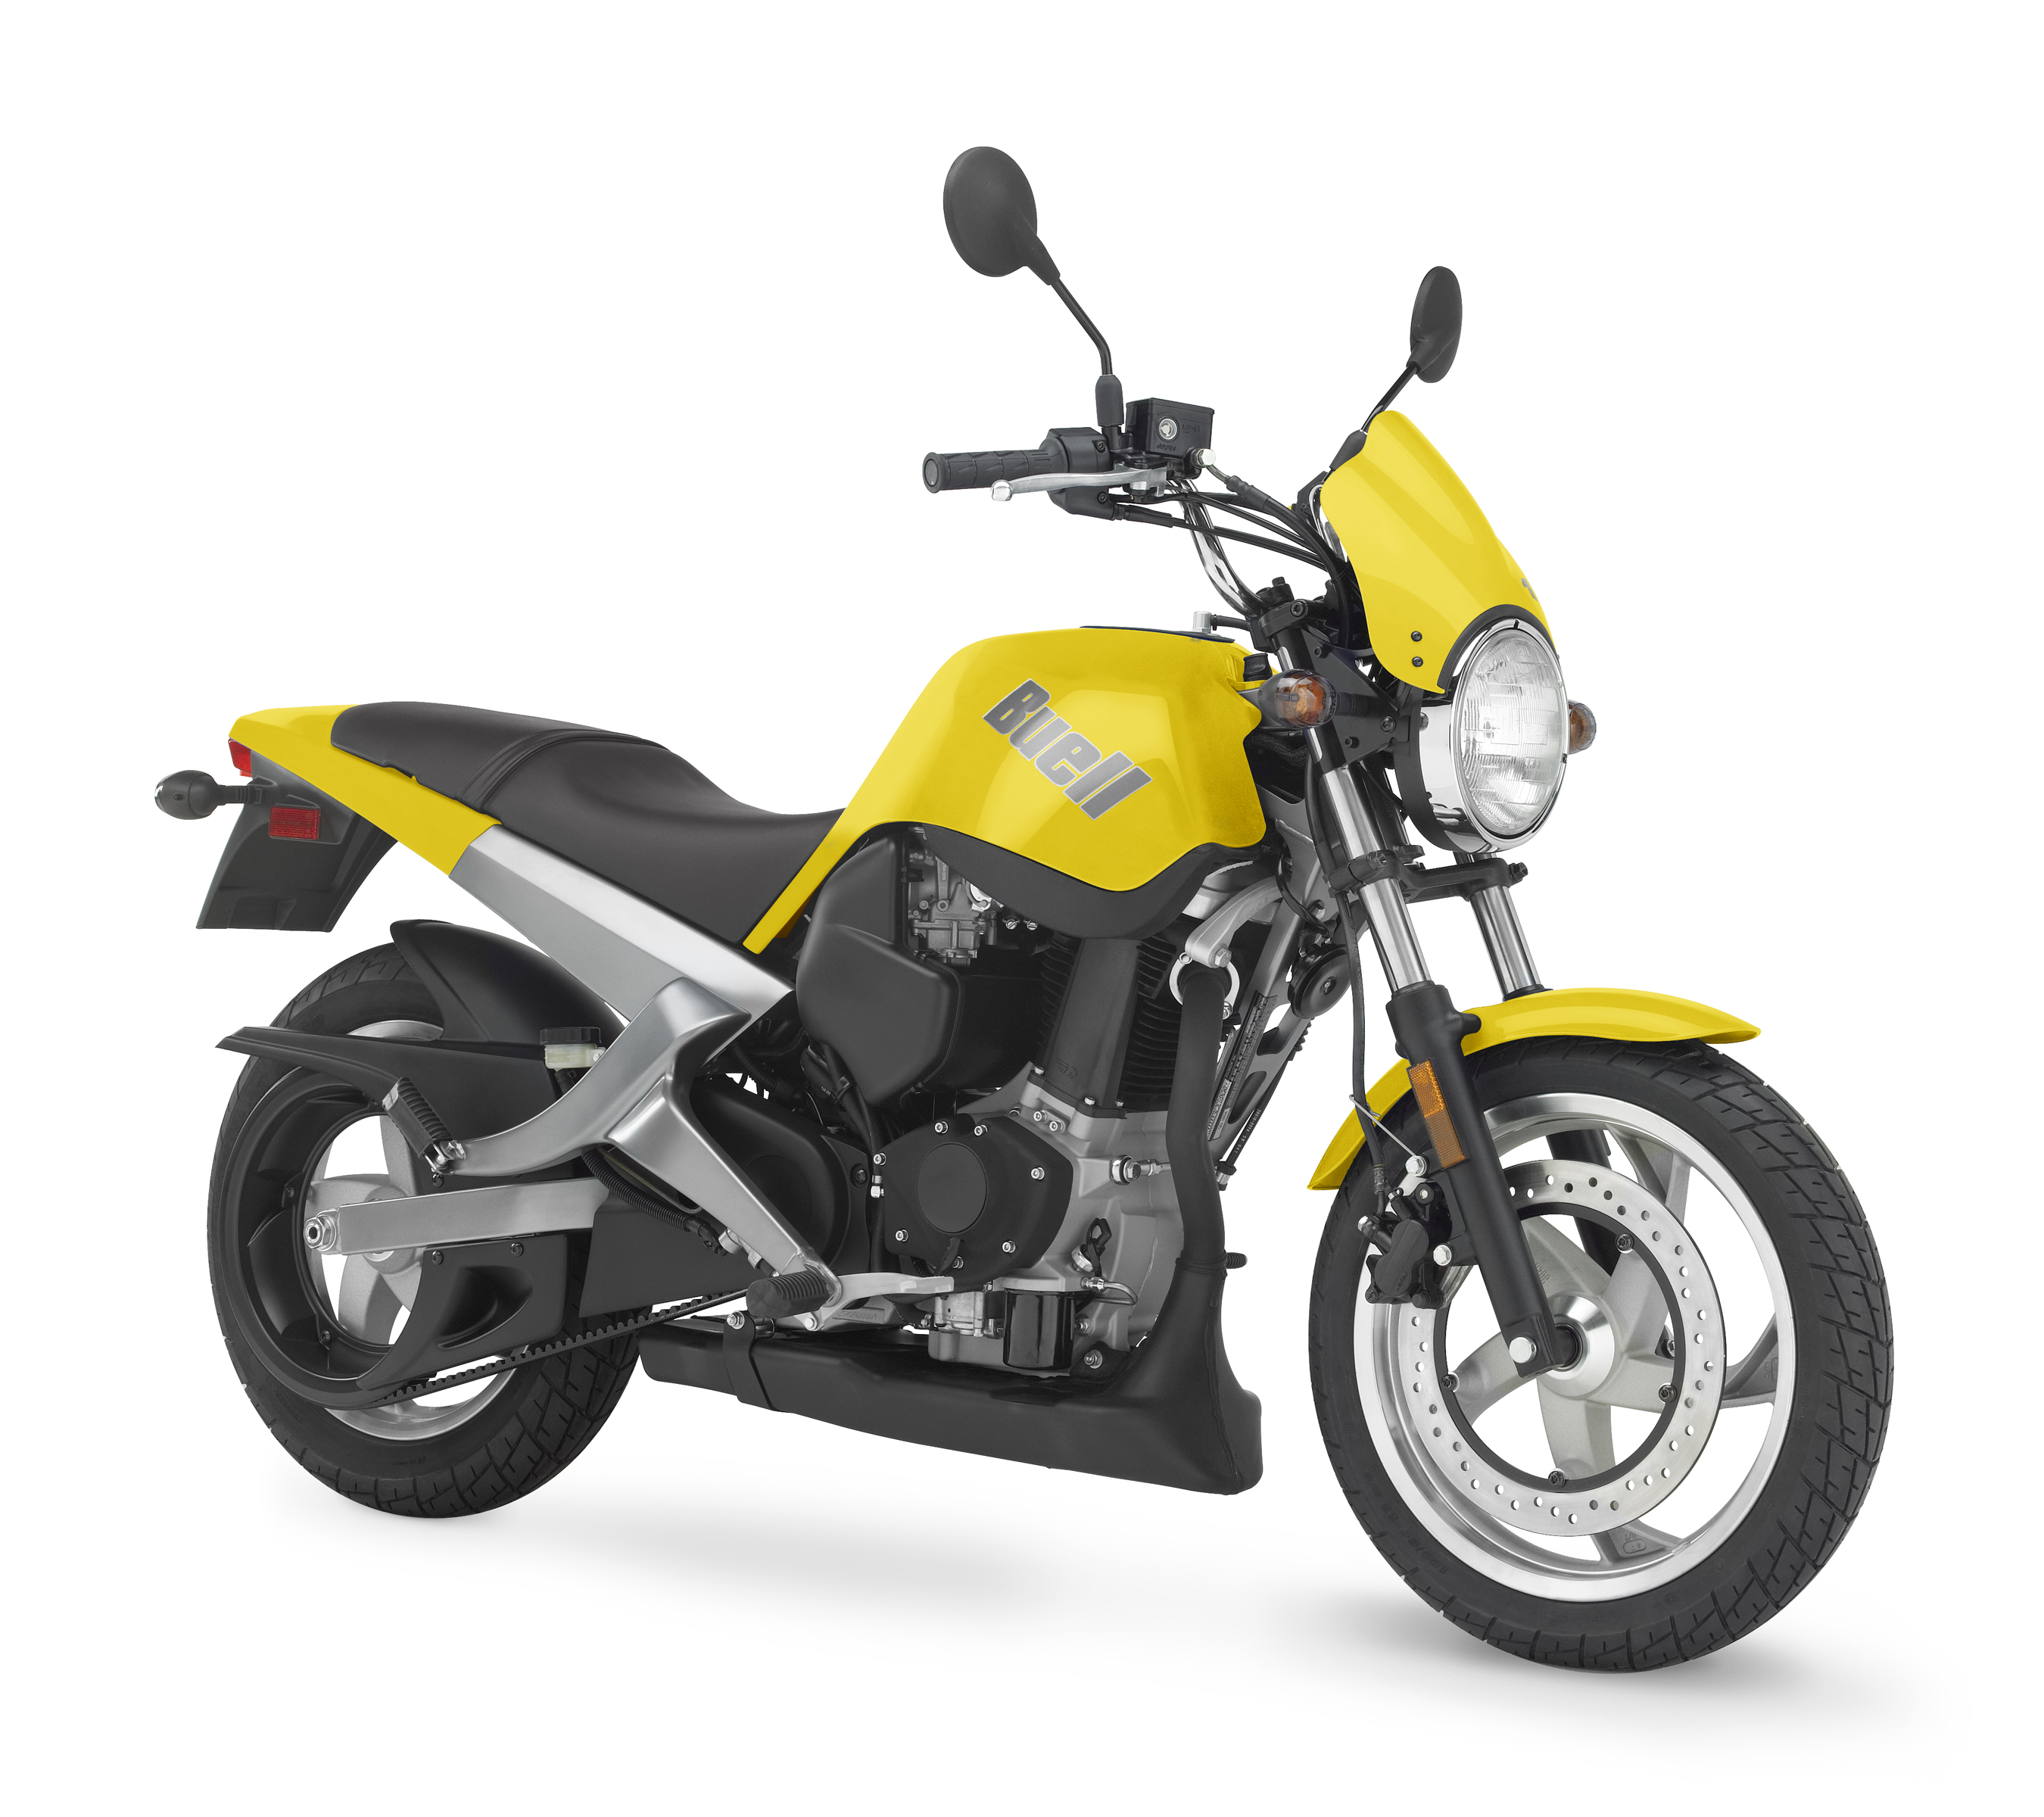 Buell Blast News And Reviews | Top Speed. »